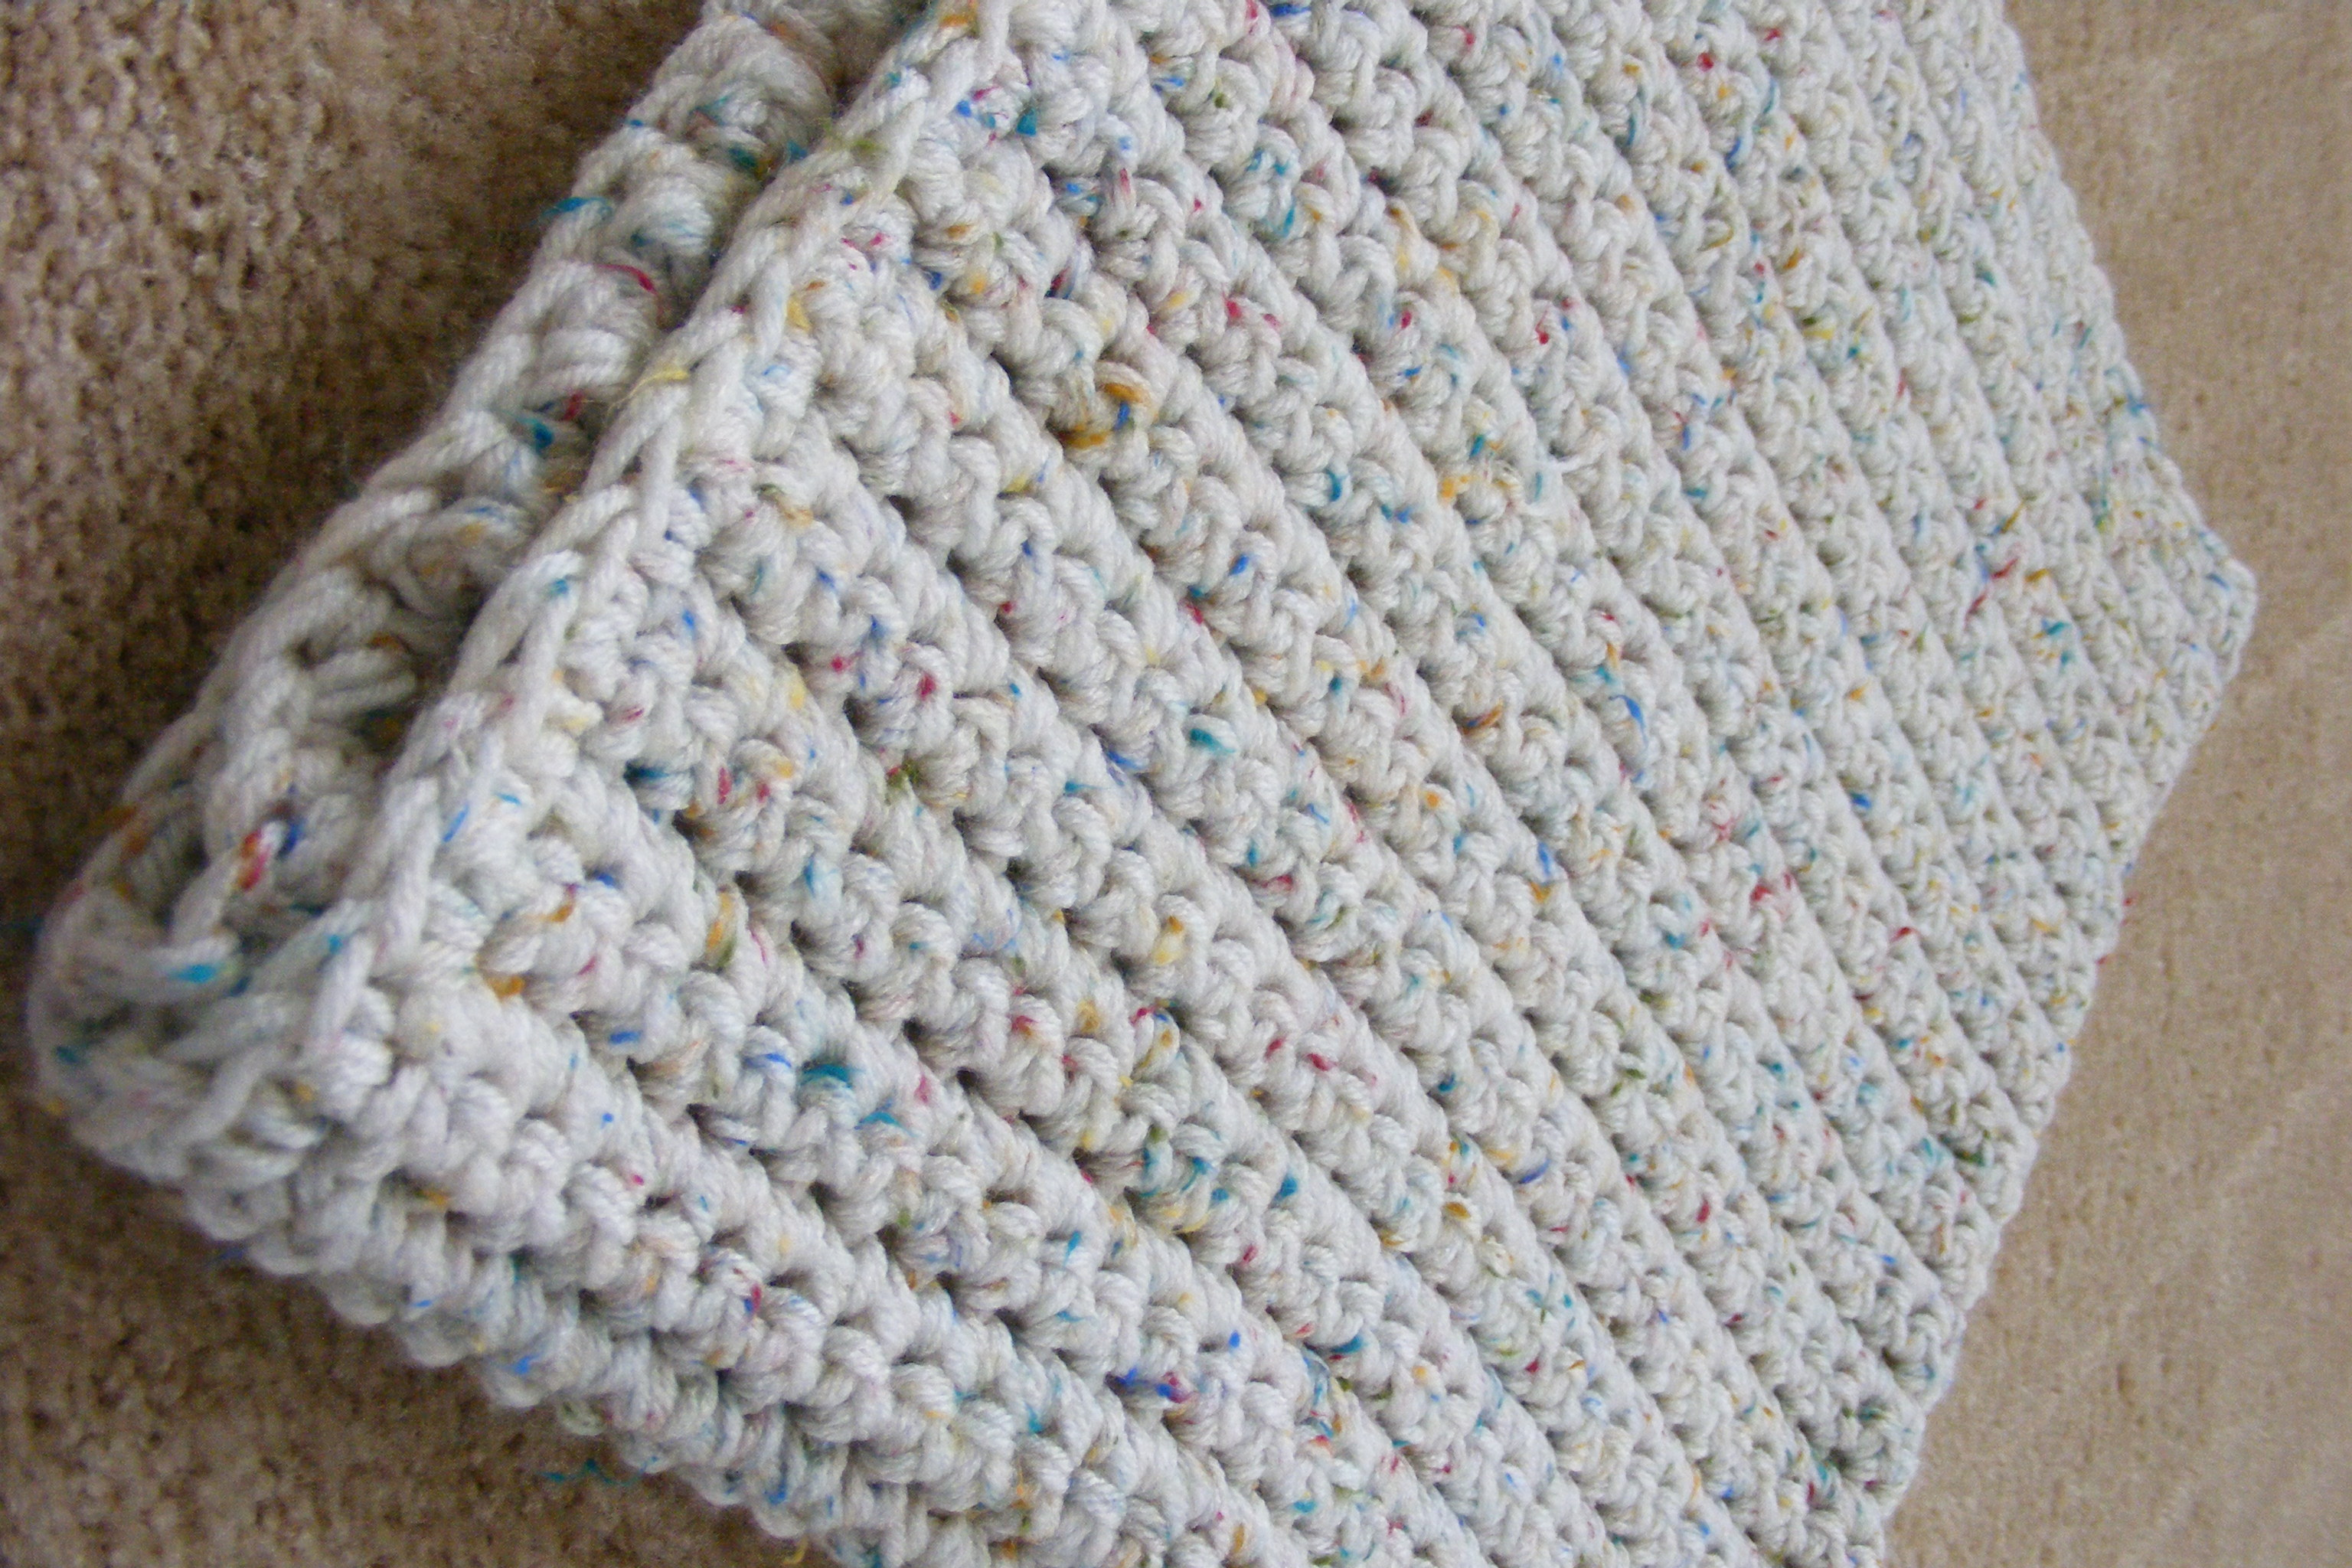 Crochet Baby Blanket : FREE CROCHET BABY BLANKET PATTERNS - SIMPLE BABY BLANKETS.